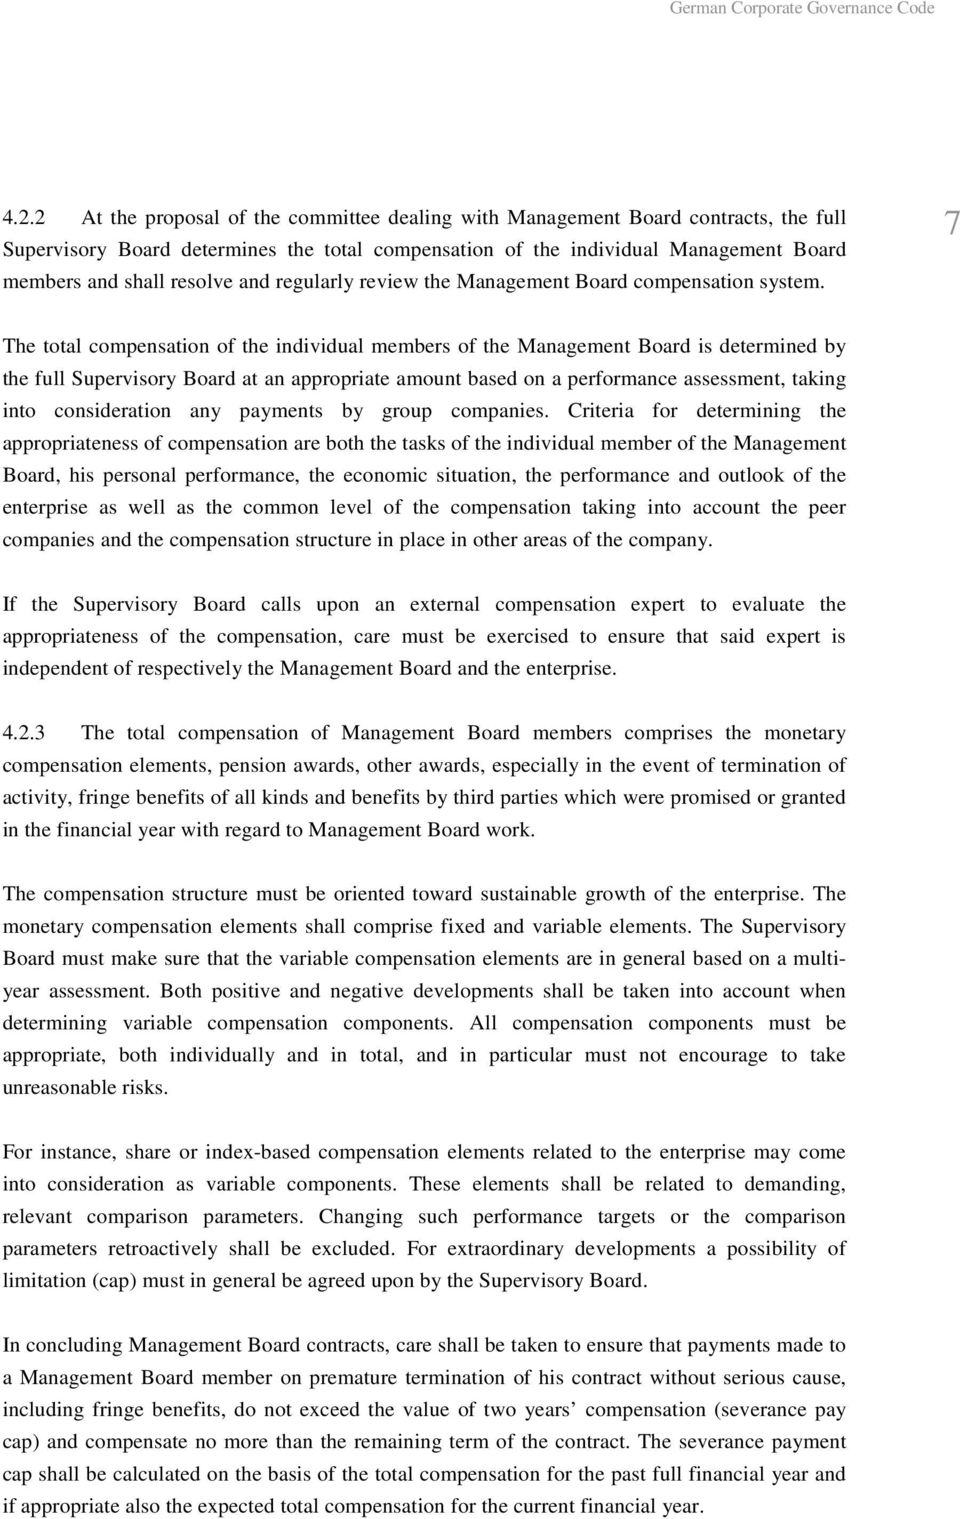 7 The total compensation of the individual members of the Management Board is determined by the full Supervisory Board at an appropriate amount based on a performance assessment, taking into